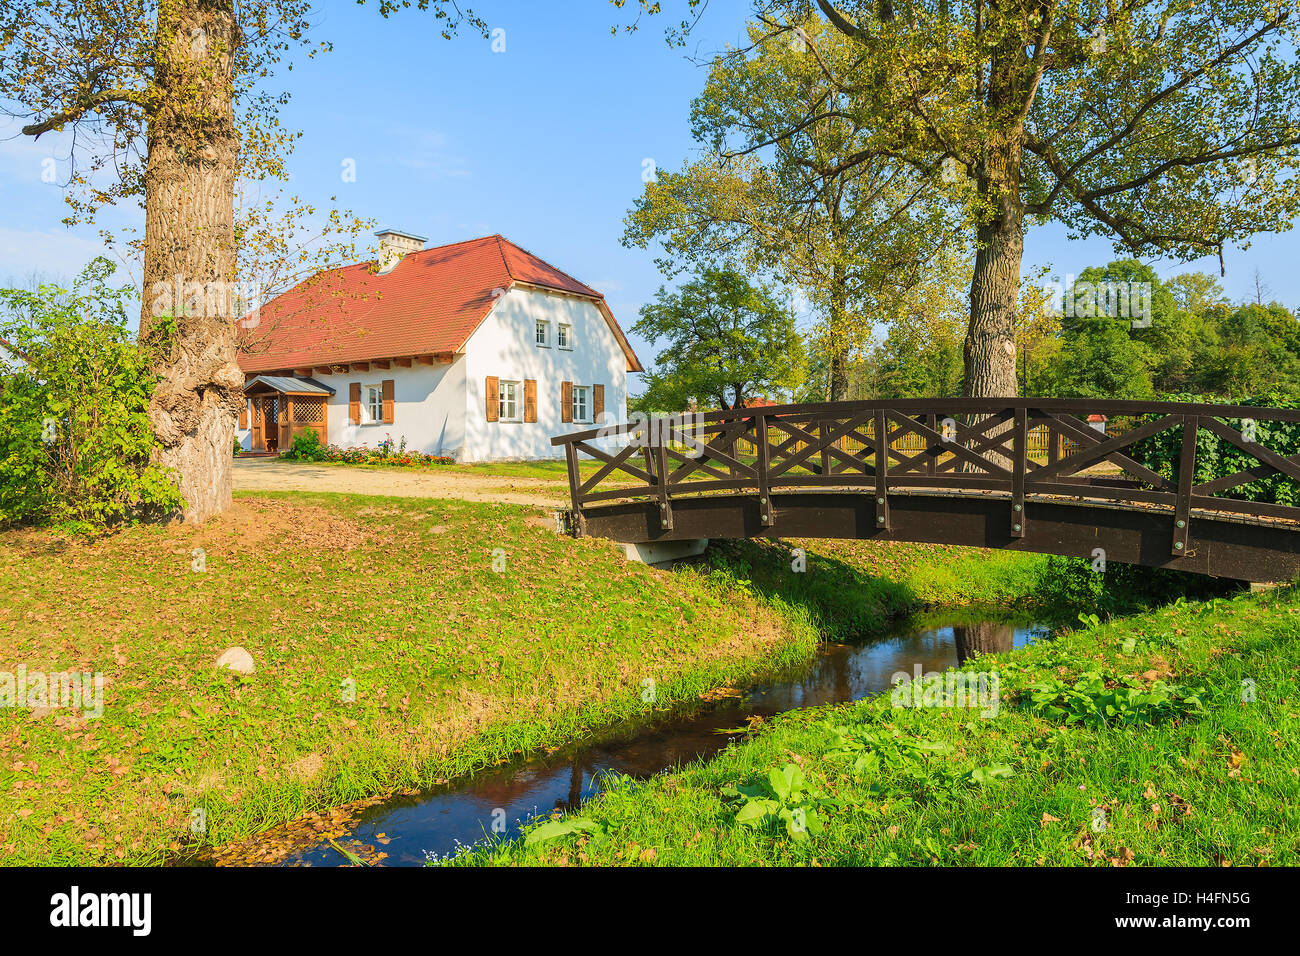 Erstaunlich countryside landscape with for Countryside Landscape With House  303mzq